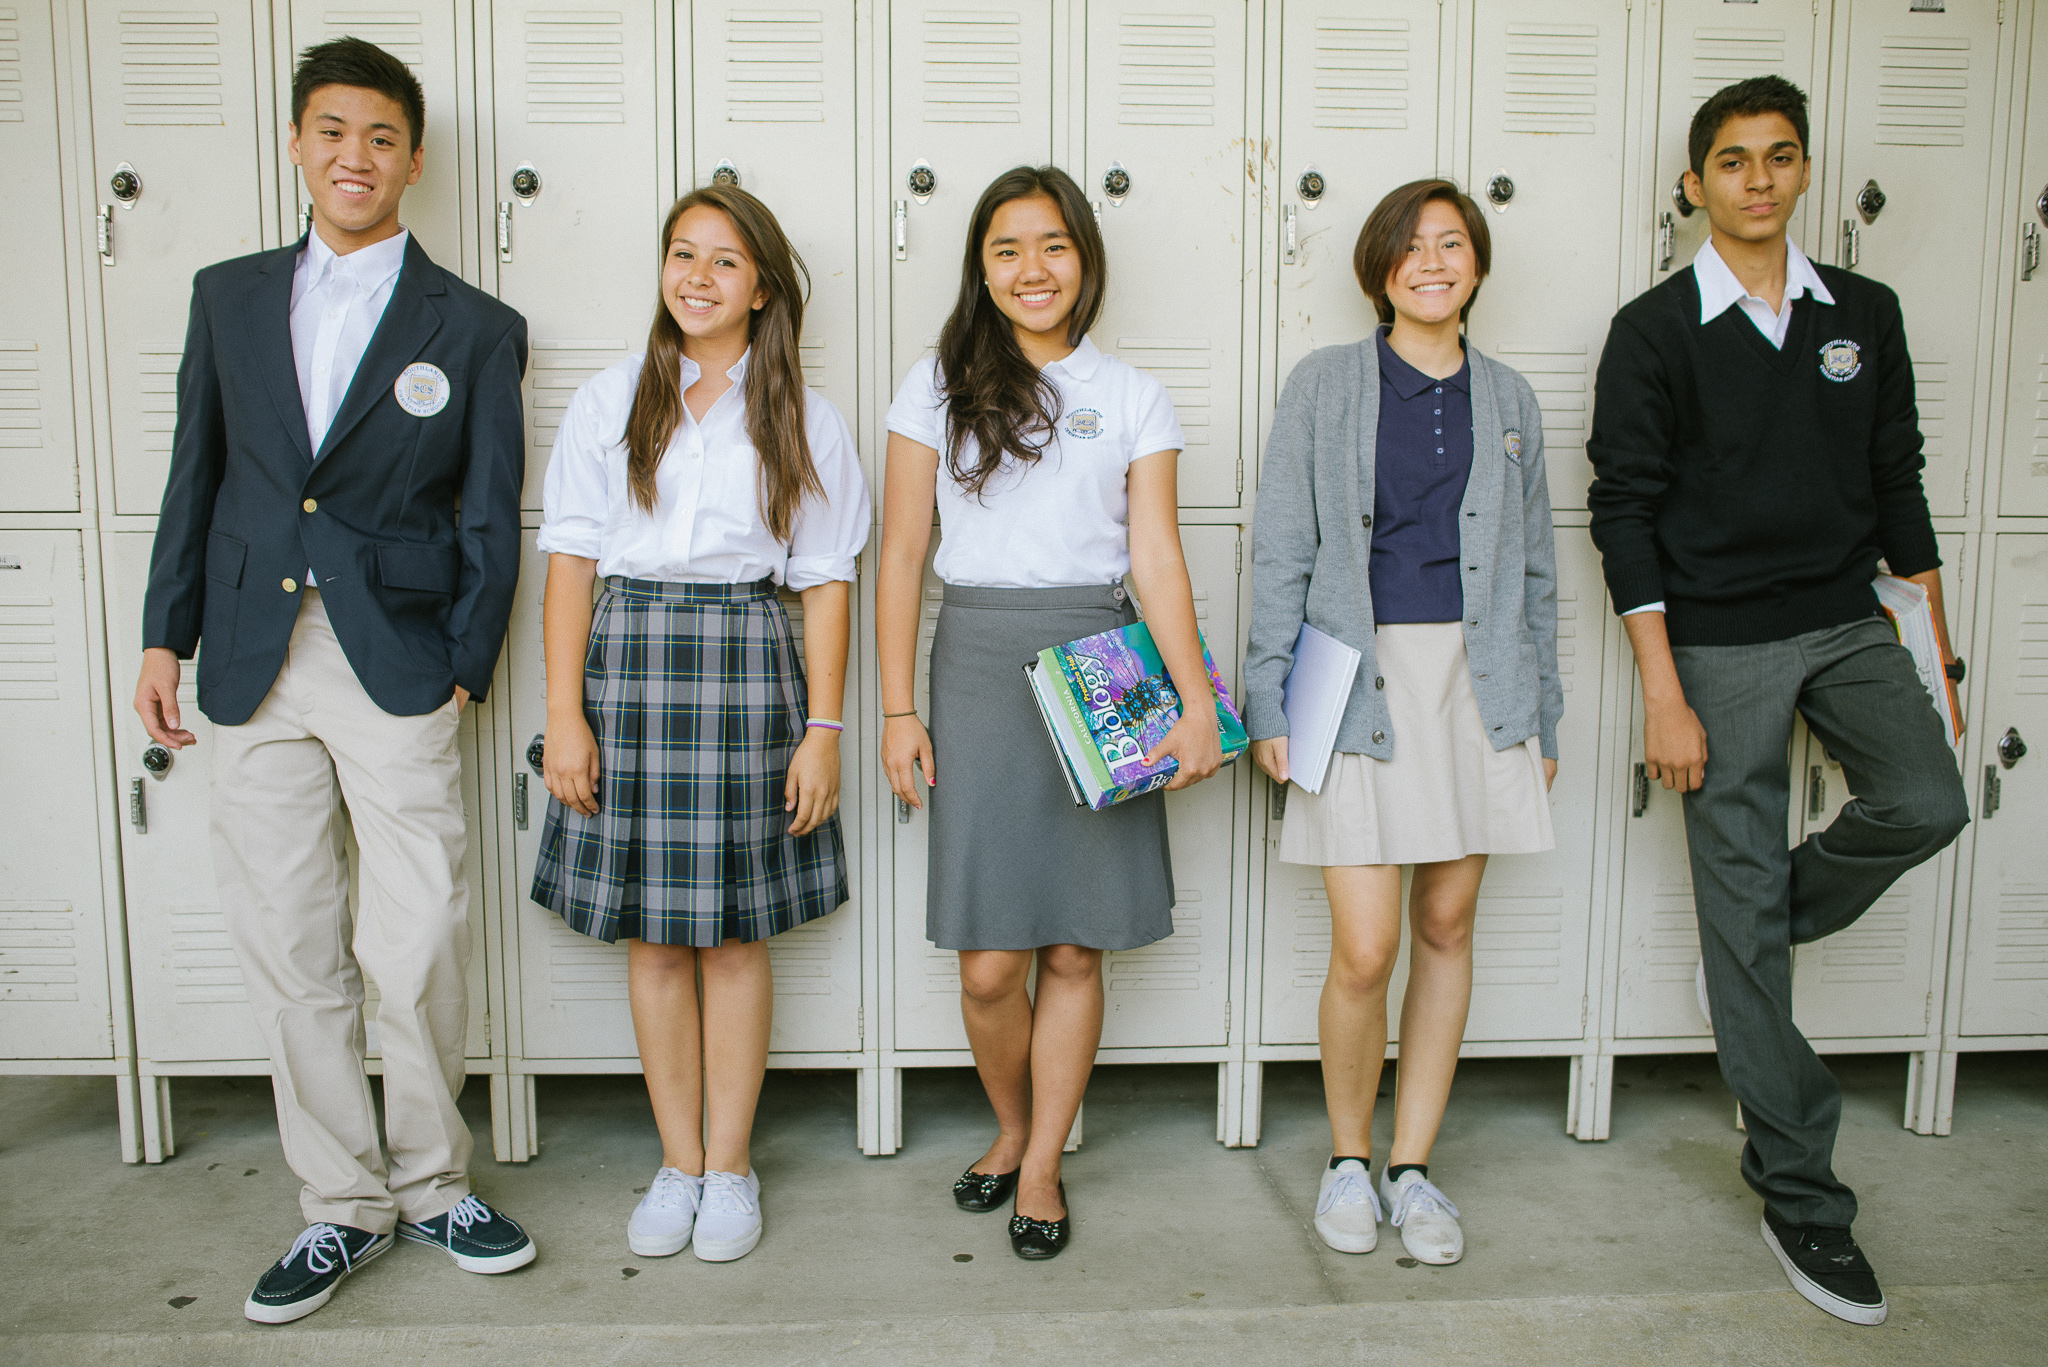 high school and uniform Holy family uniforms reflect an environment of student equality and academic  focus school-approved apparel must be worn at all times during school hours.